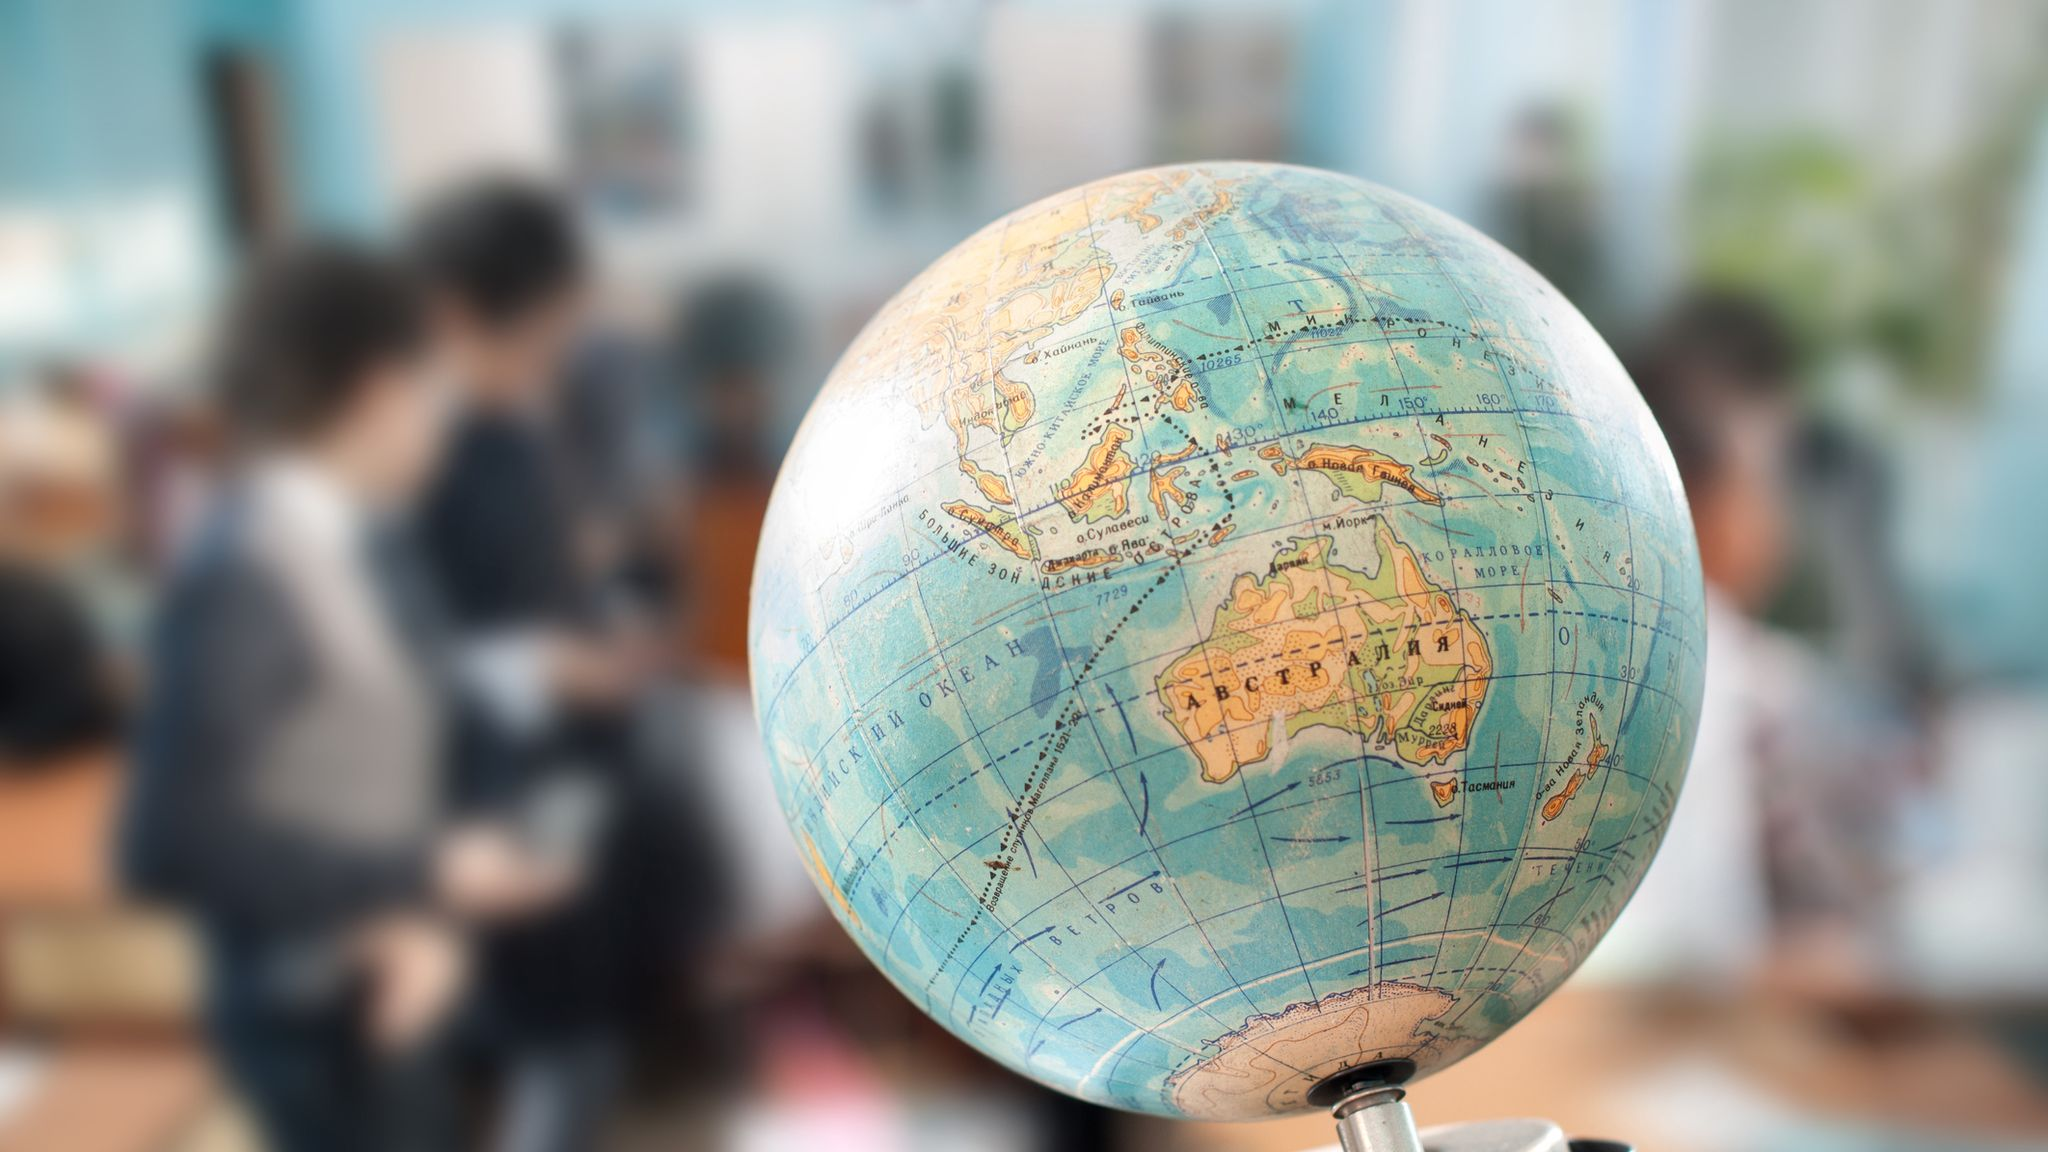 Less-intelligent posh kids are taking geography as a soft option, professor claims